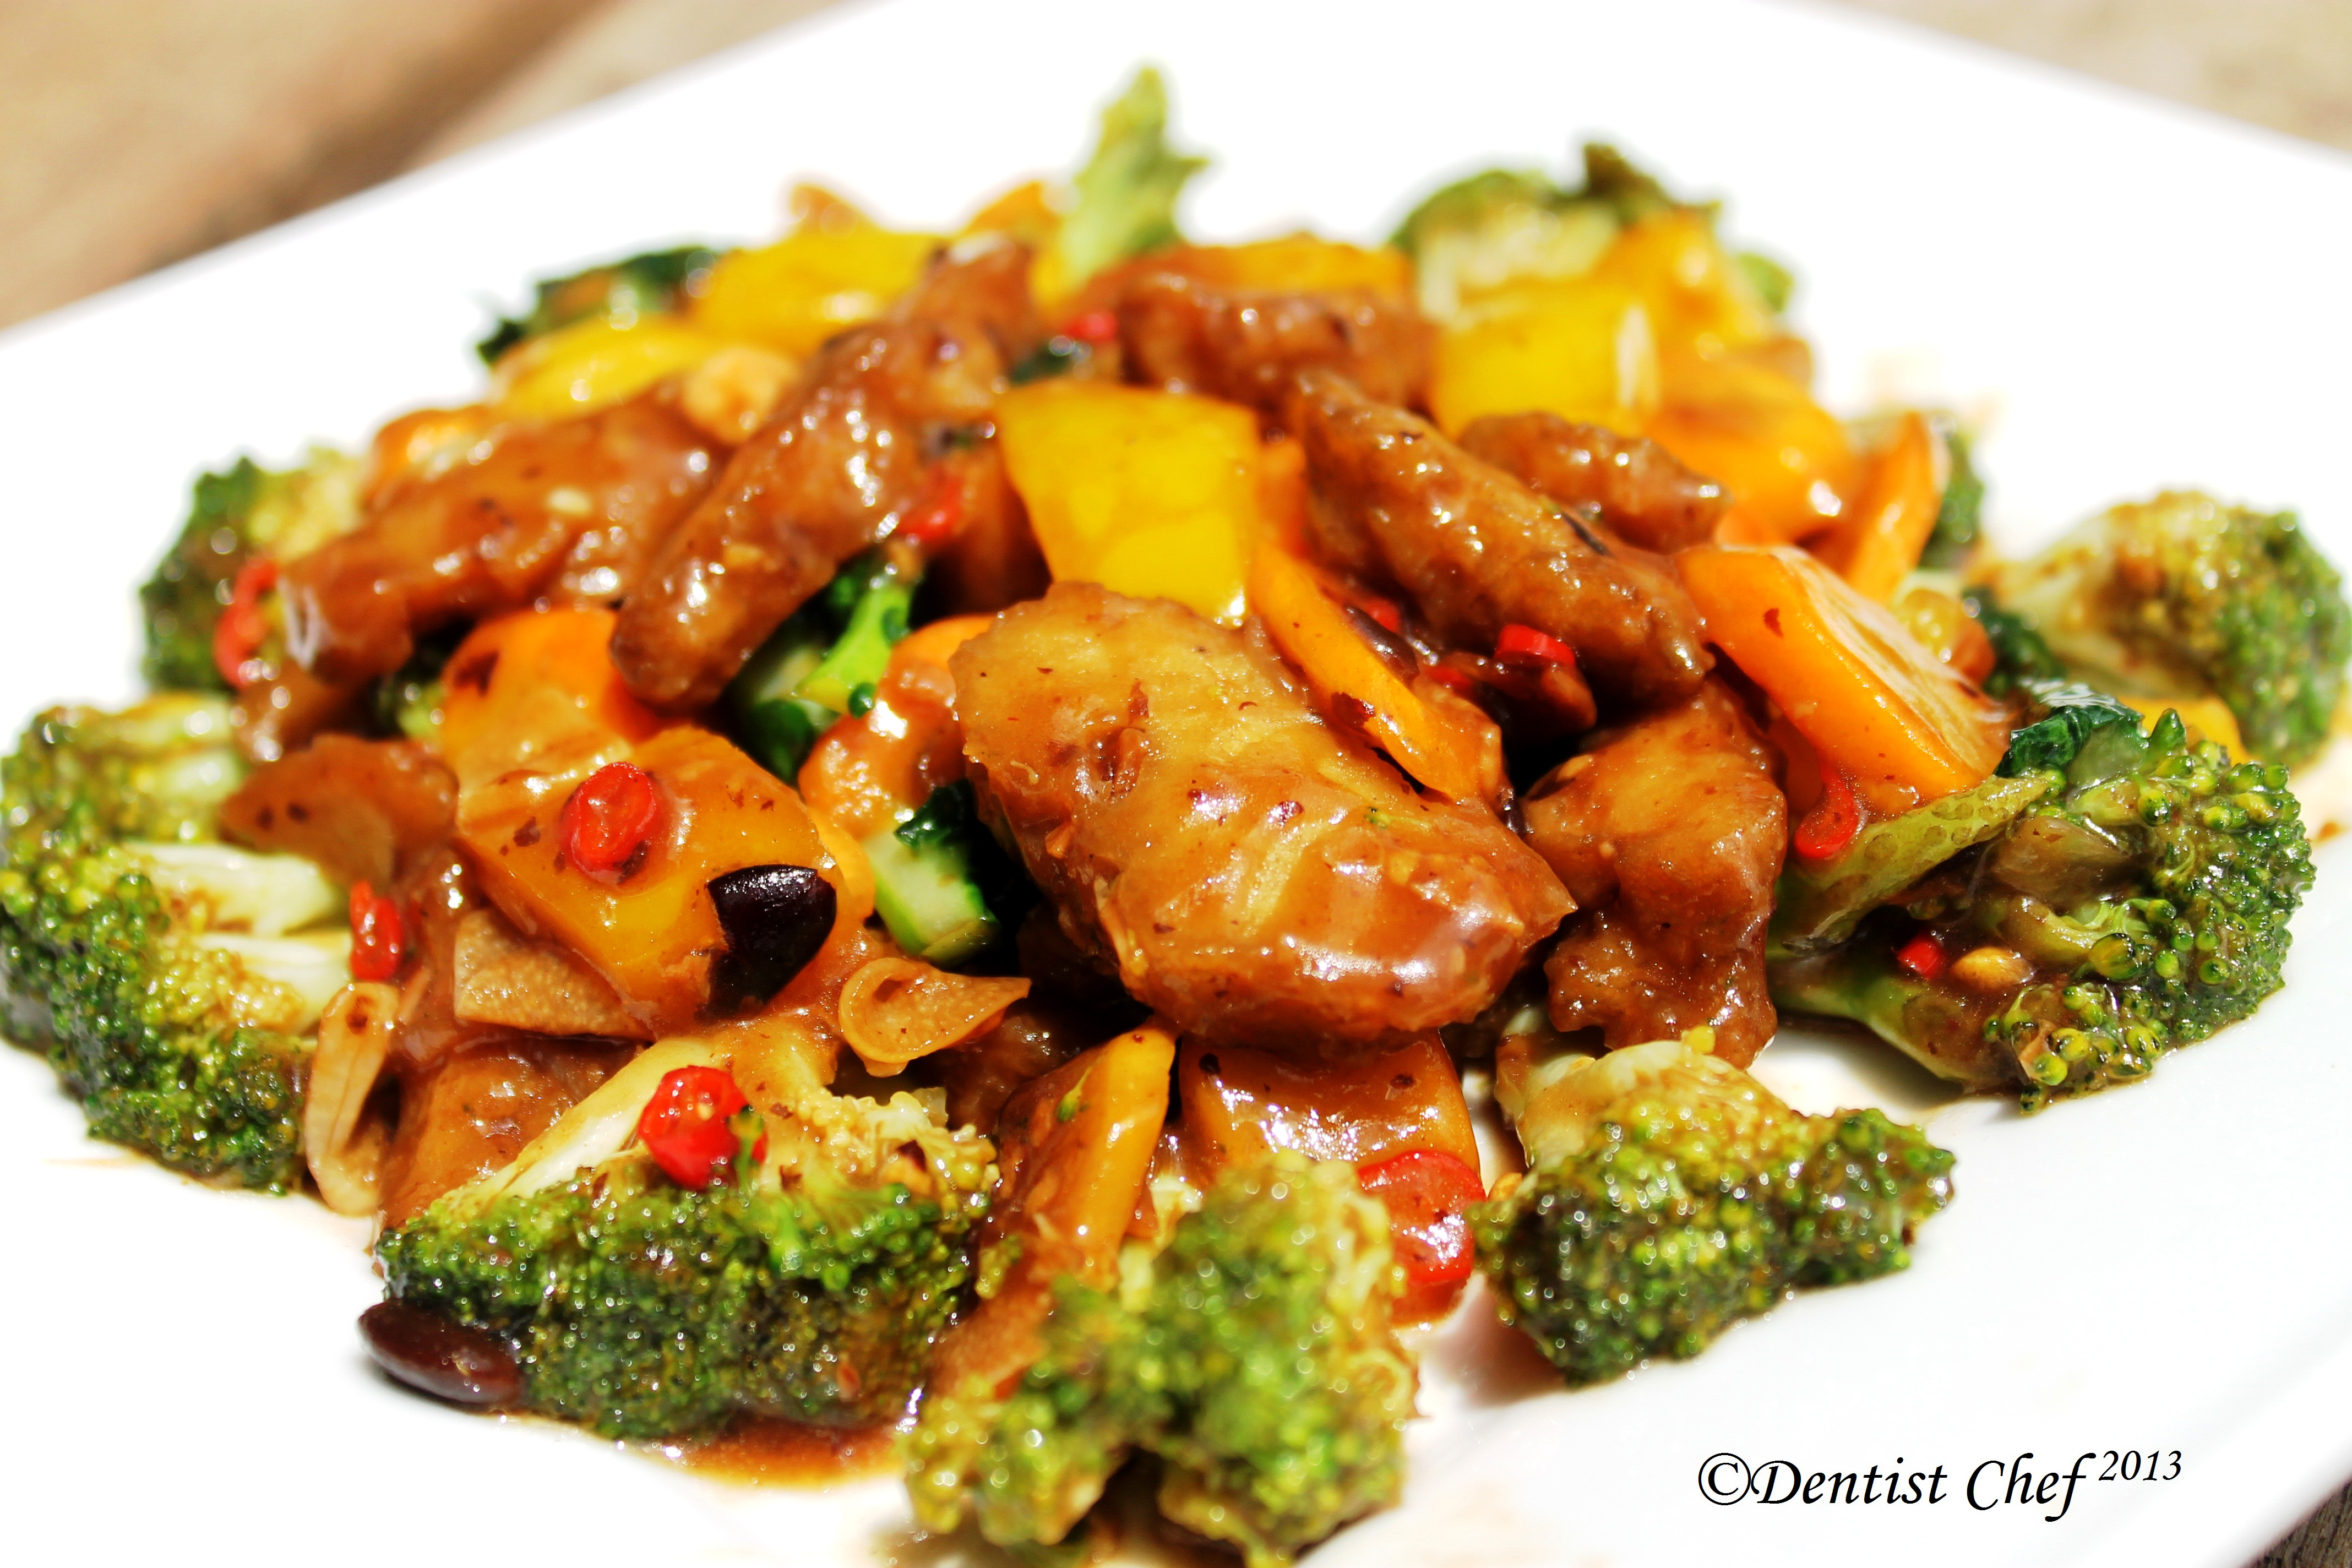 Chinese Stir Fry Beef Recipe  Dentist Chef-5127